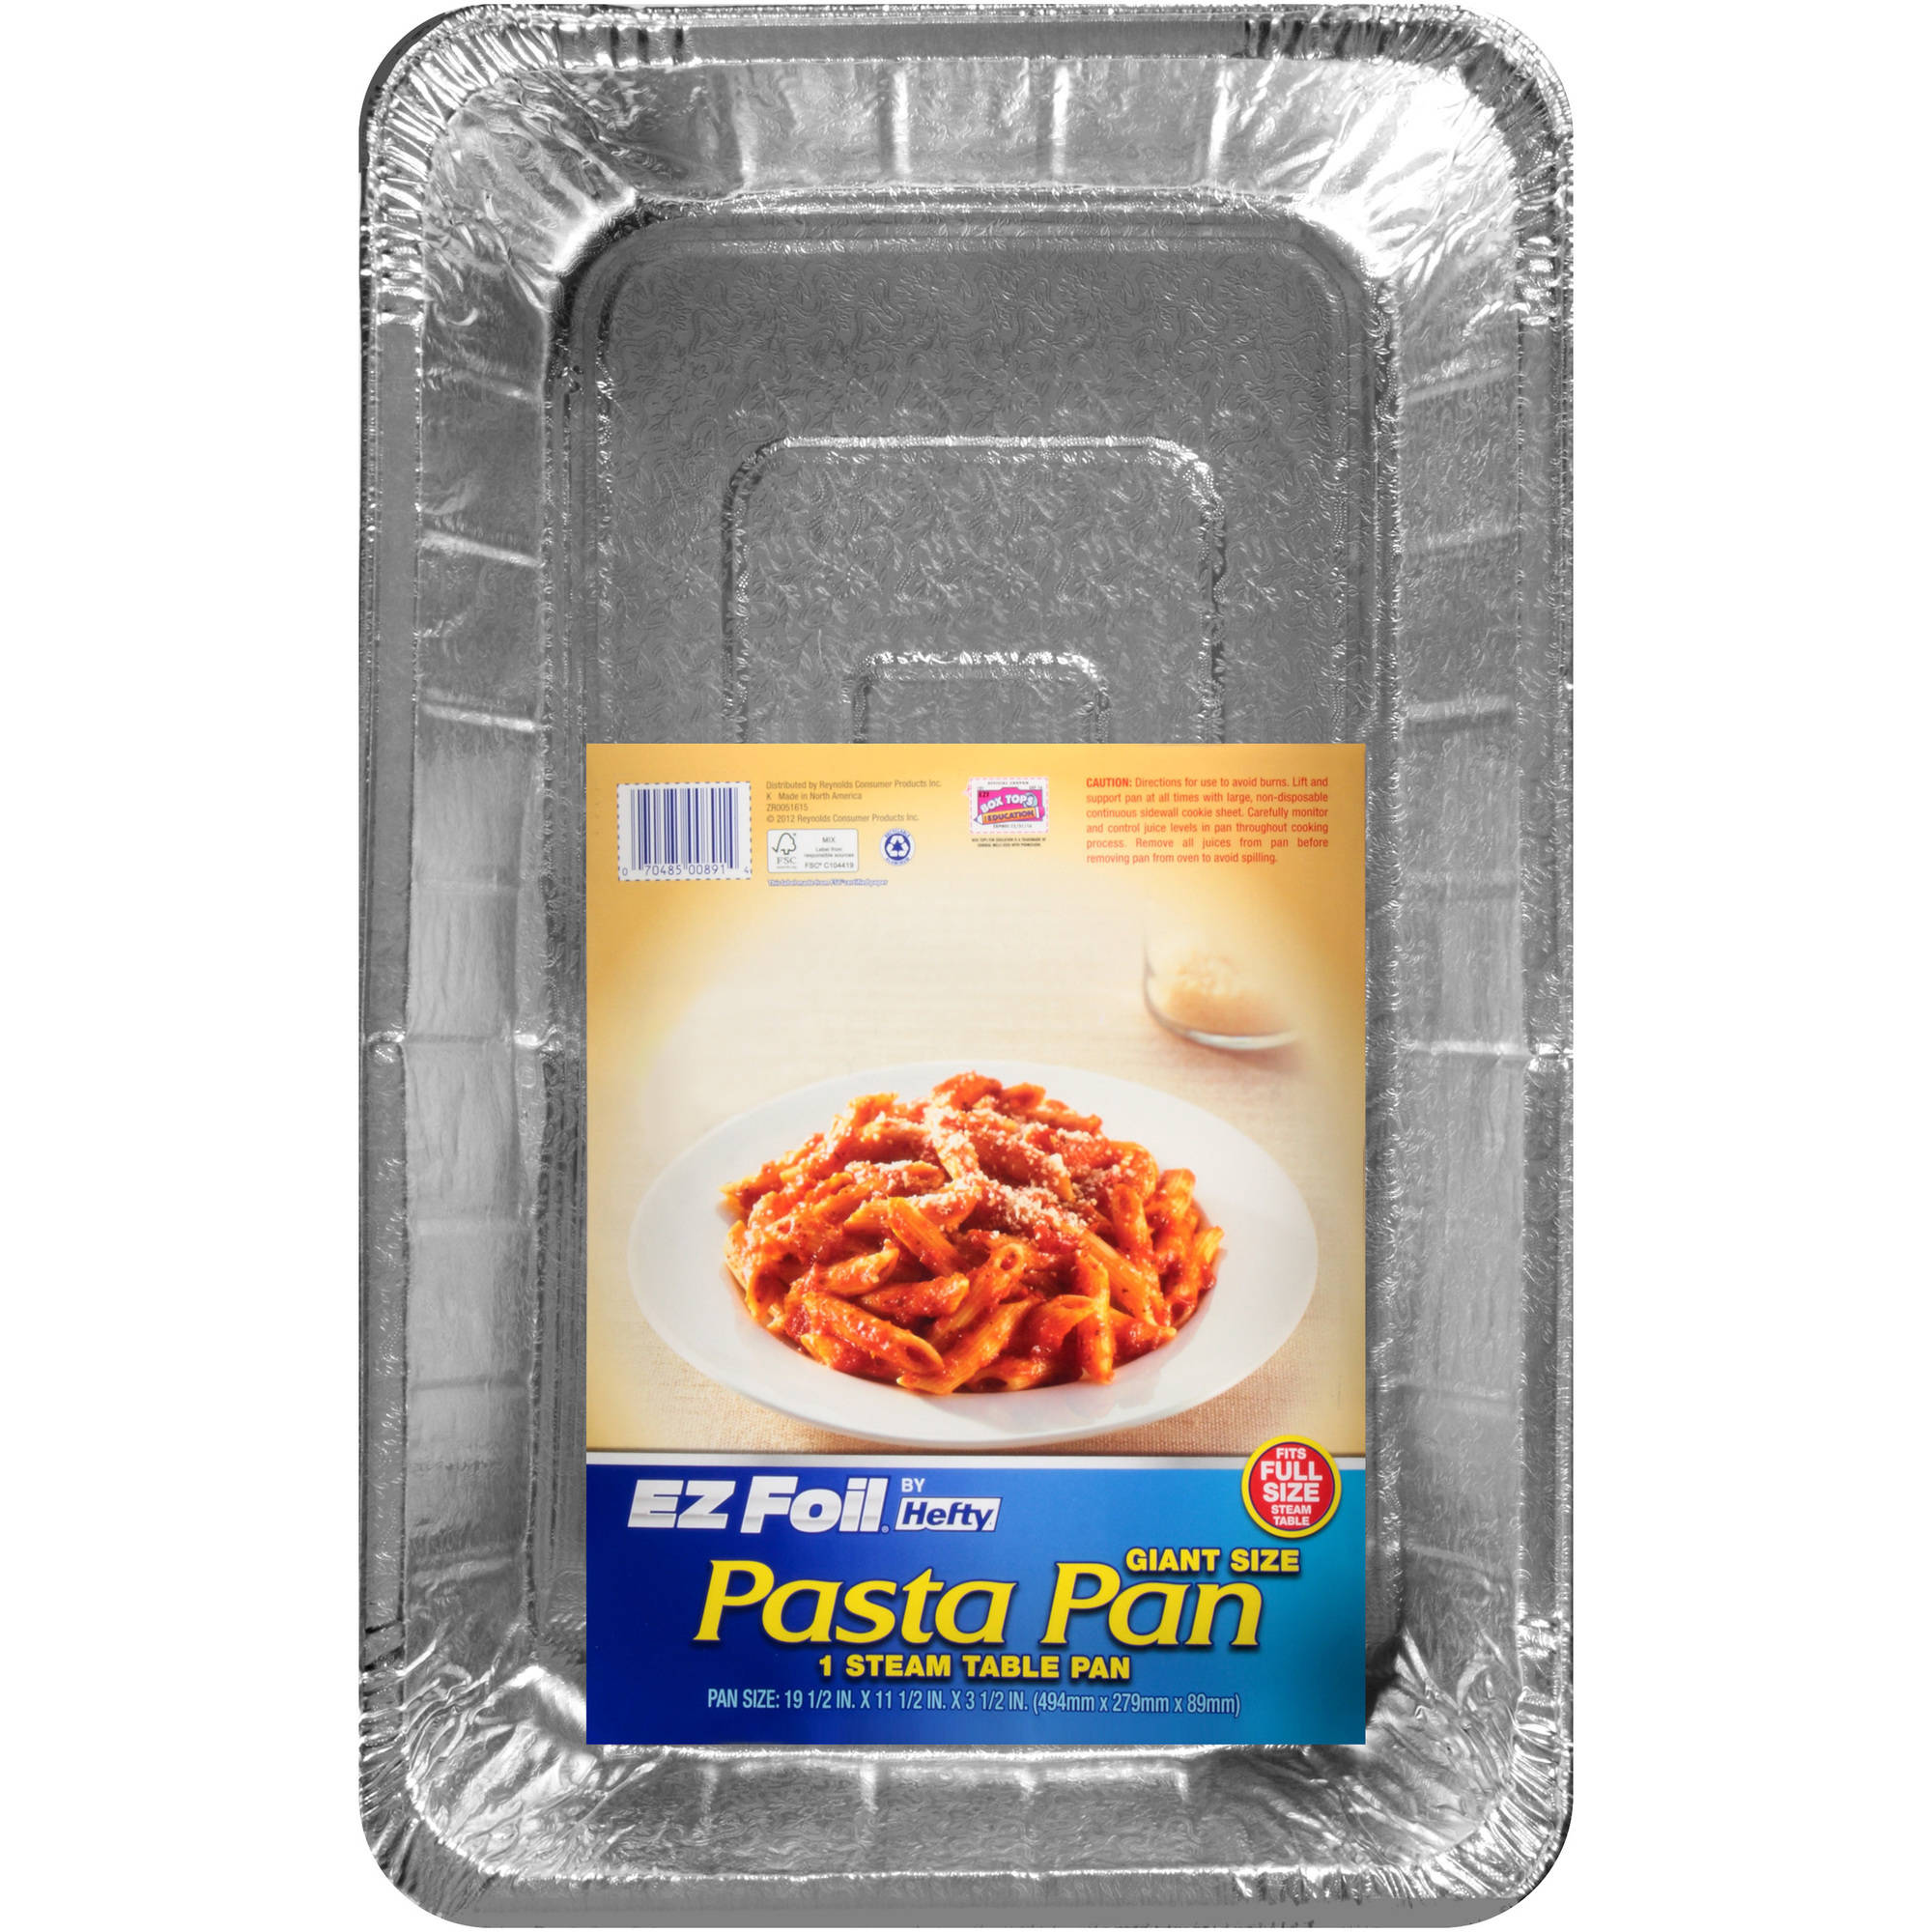 Hefty EZ Foil Giant Pasta Pan